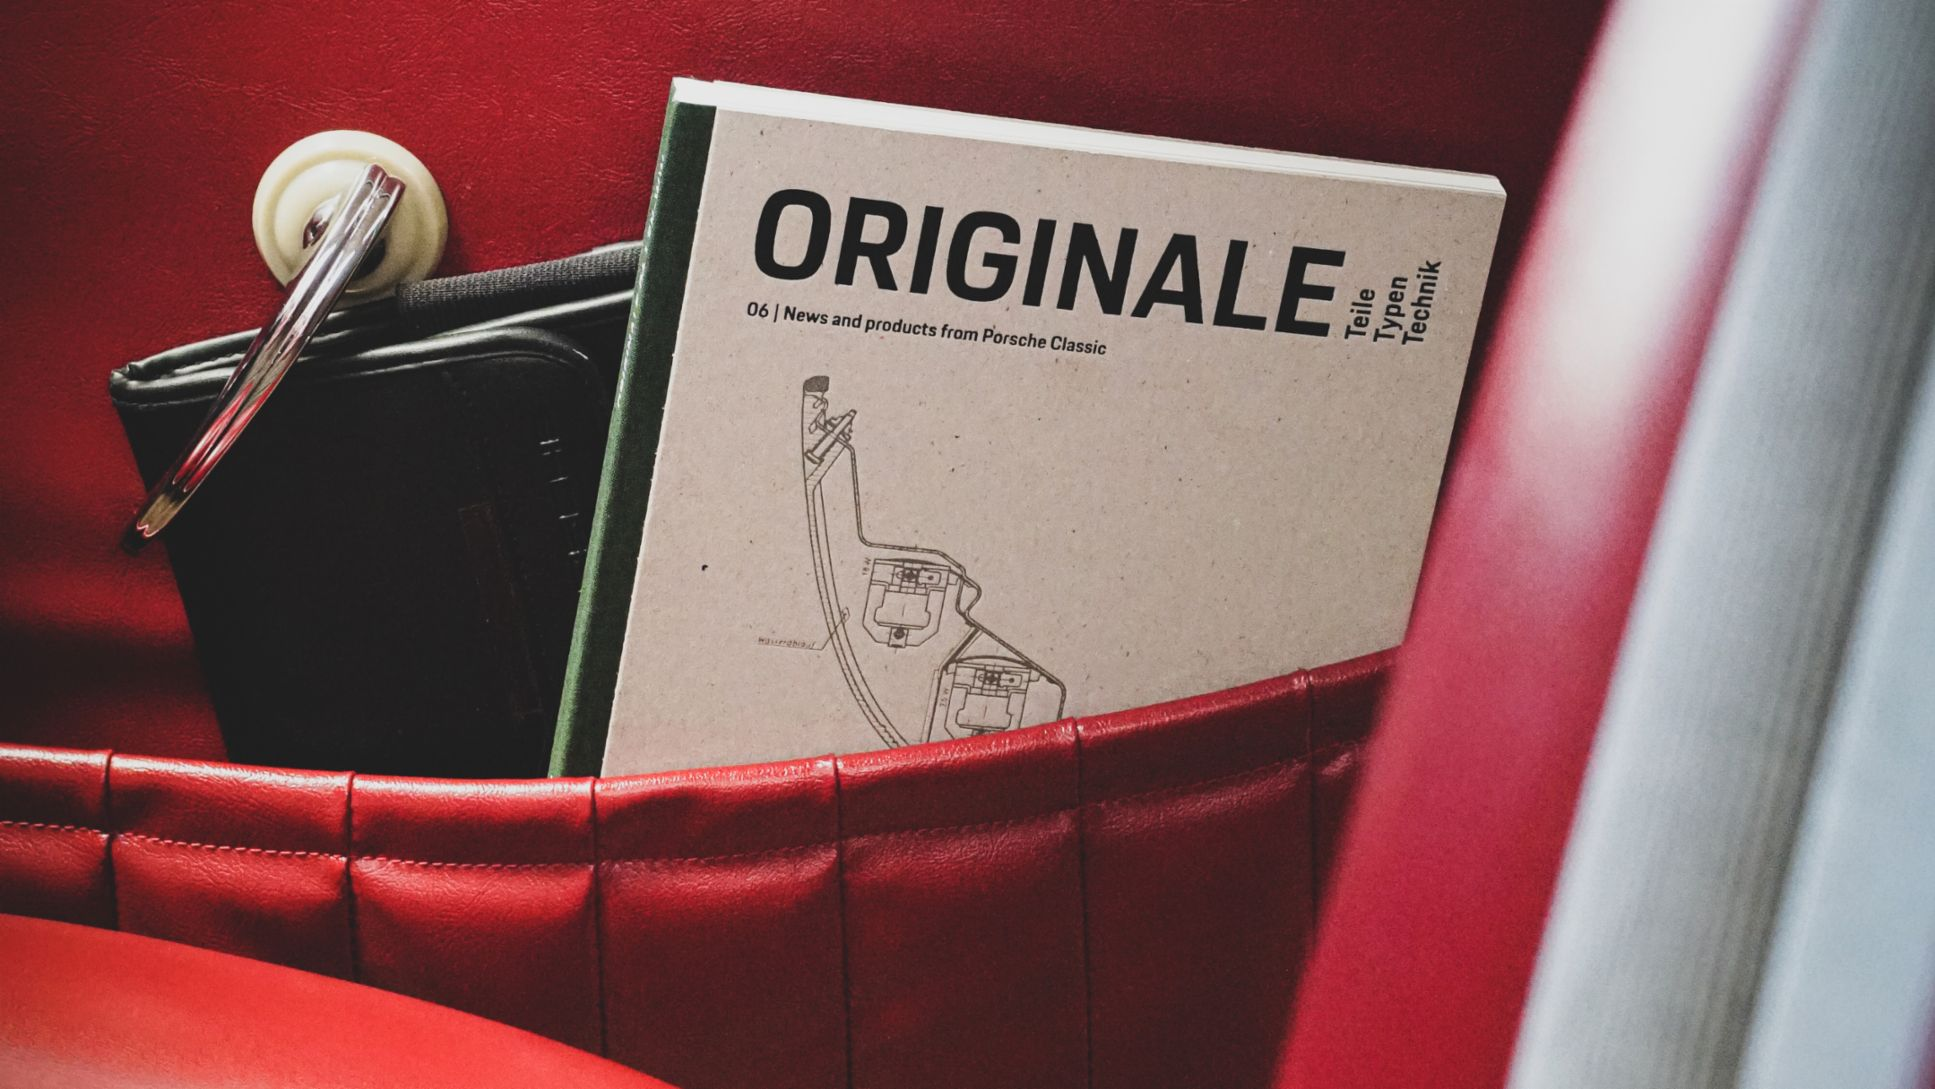 """ORIGINALE"" Porsche Classic catalogue, 2020, Porsche AG"